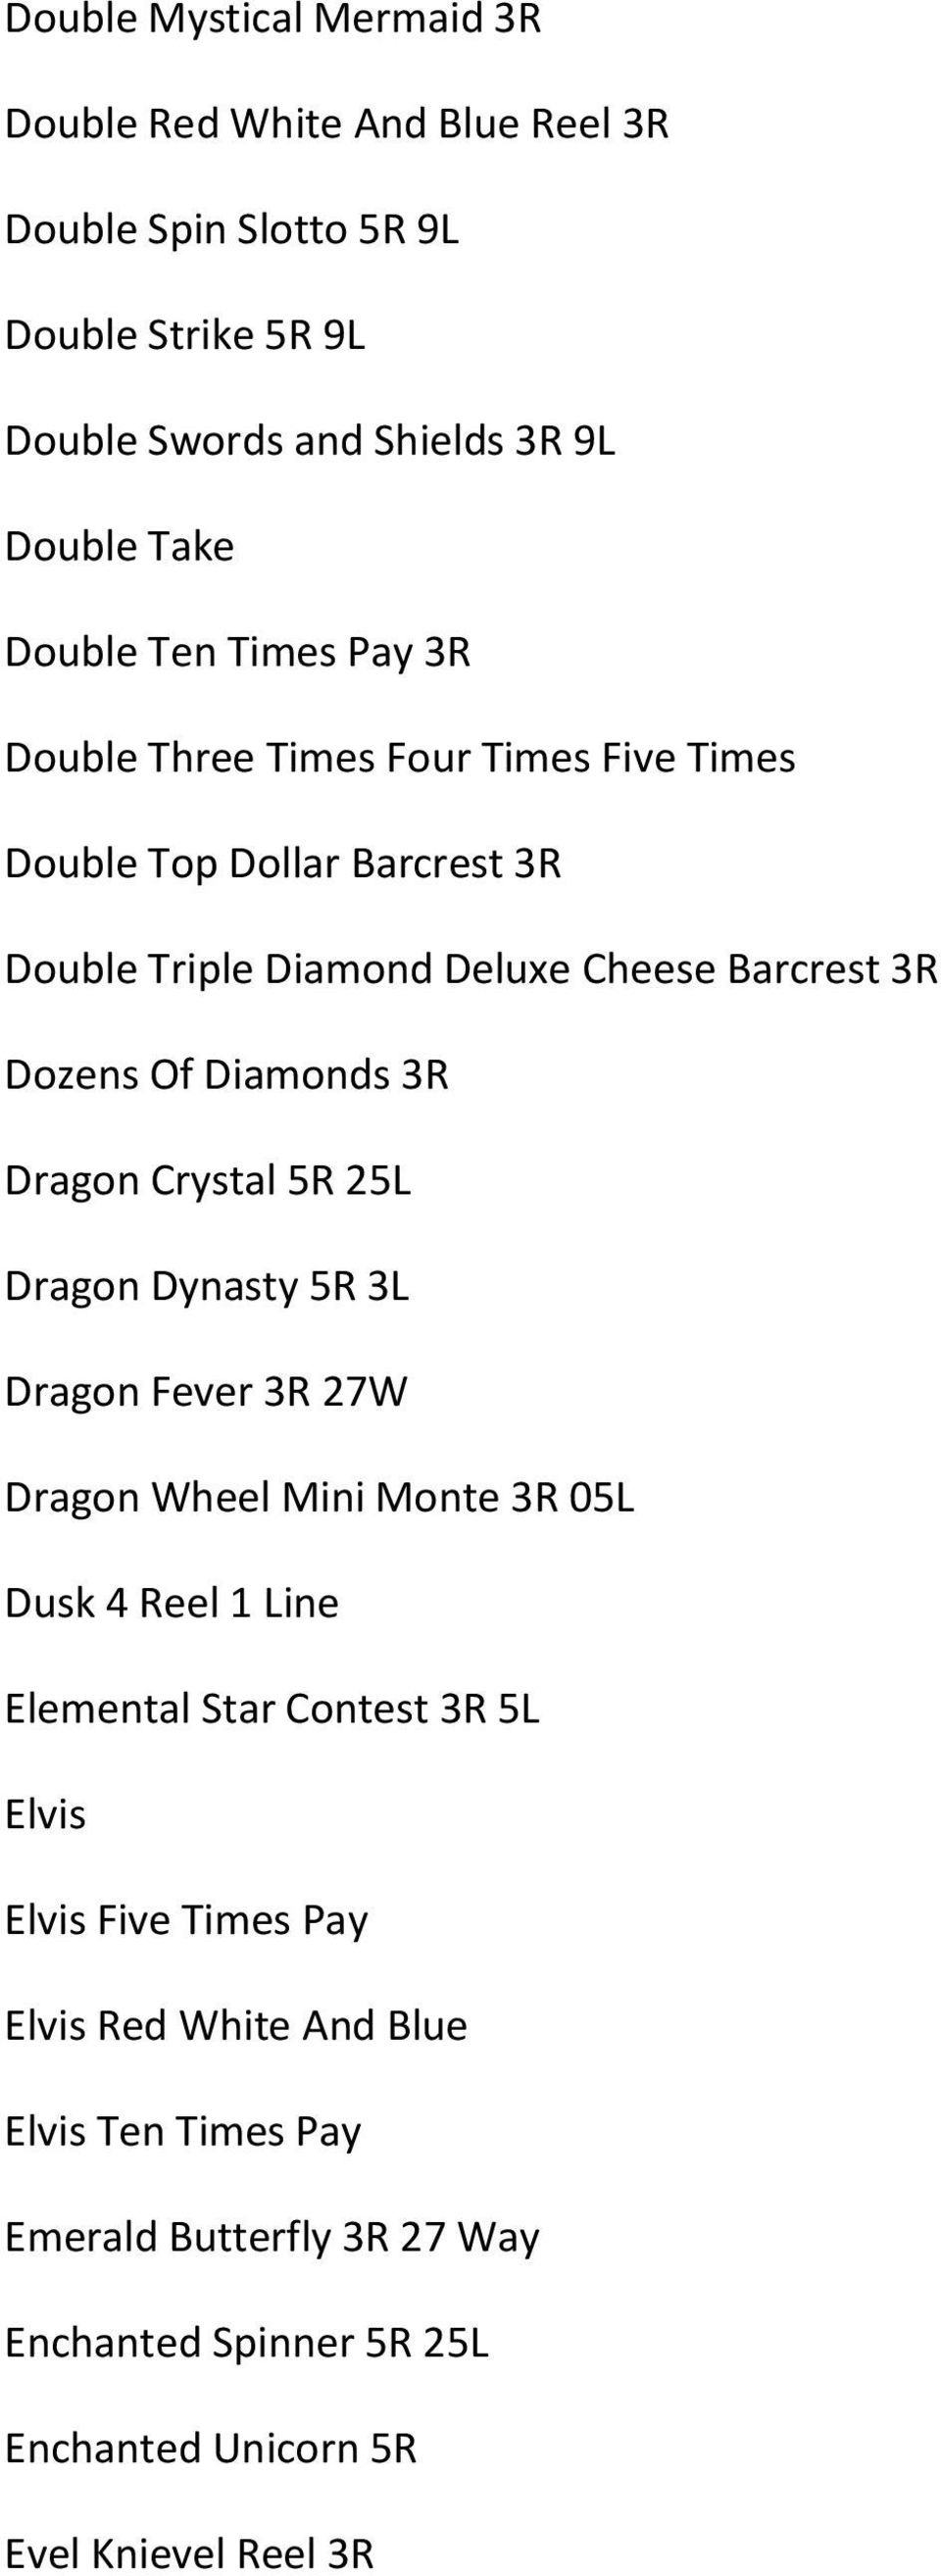 Diamonds 3R Dragon Crystal 5R 25L Dragon Dynasty 5R 3L Dragon Fever 3R 27W Dragon Wheel Mini Monte 3R 05L Dusk 4 Reel 1 Line Elemental Star Contest 3R 5L